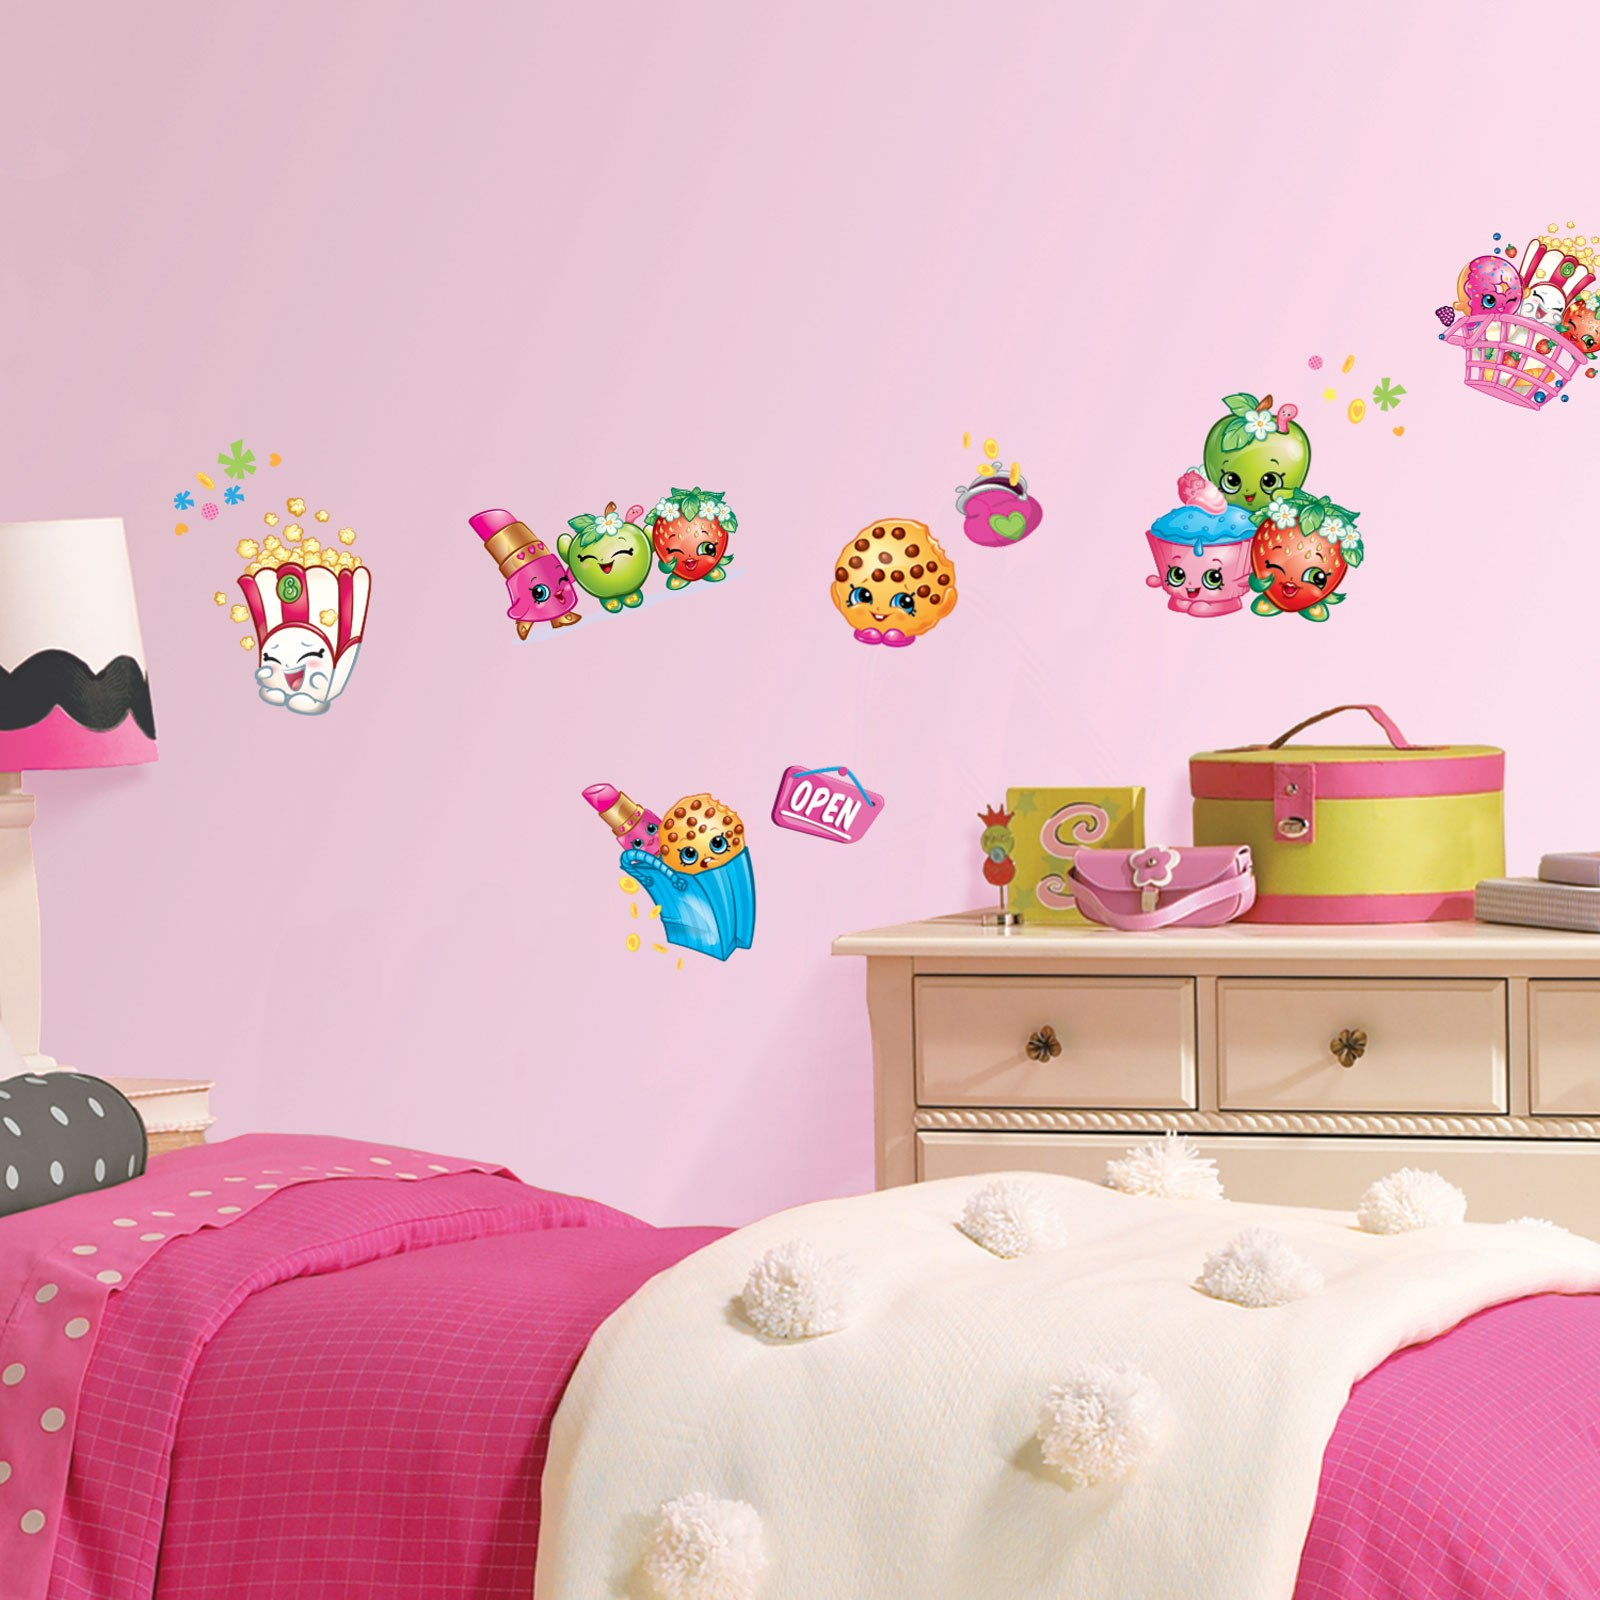 Wallpaper Decal: Shopkins Small Wall Decals